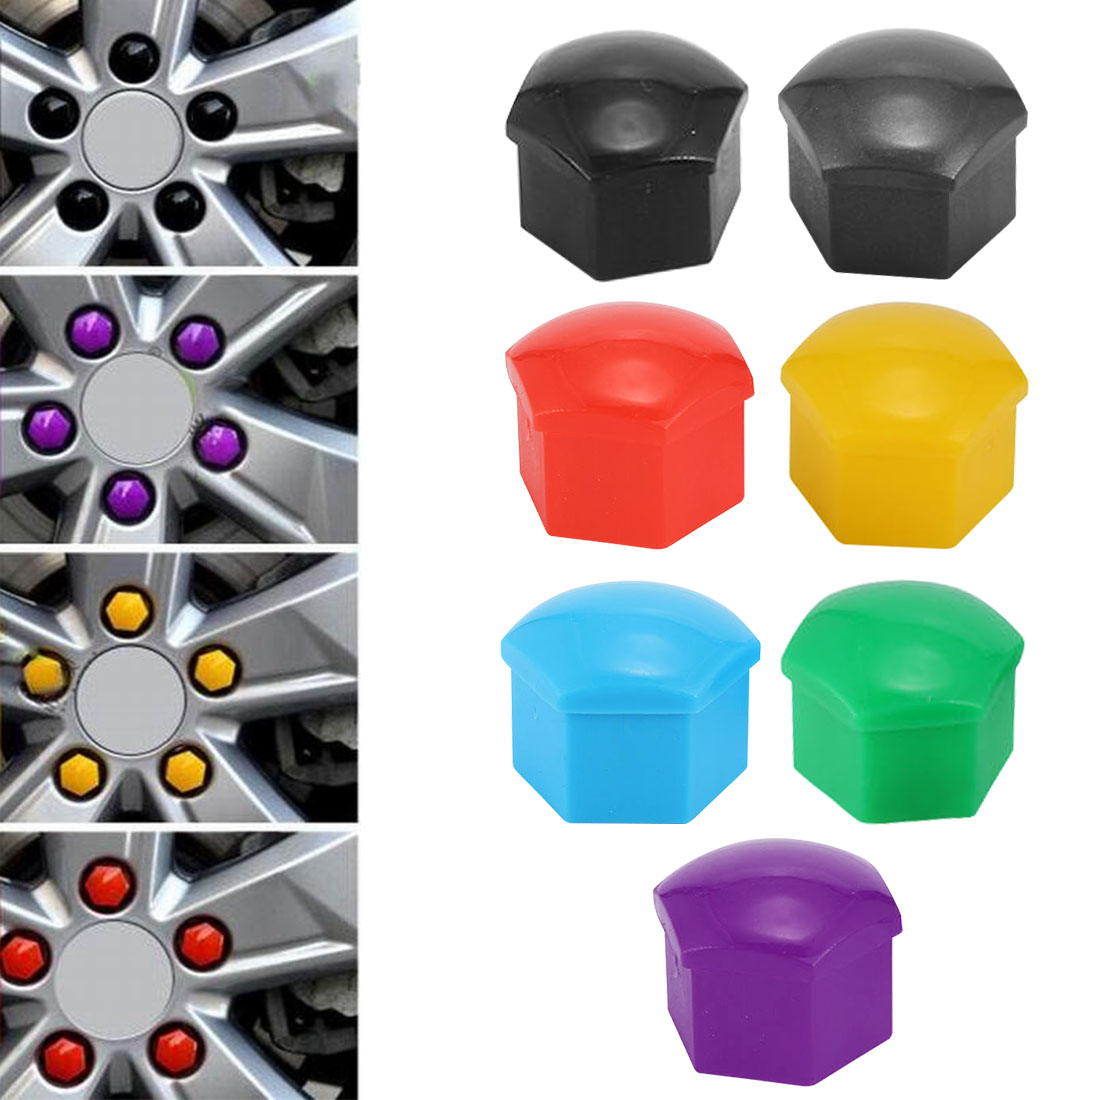 <font><b>Silicone</b></font> <font><b>Car</b></font> Bolt Caps 20pcs/bag 17mm 19mm 21mm <font><b>Car</b></font> Bolt Caps <font><b>Wheel</b></font> <font><b>Nuts</b></font> <font><b>Silicone</b></font> <font><b>Covers</b></font> Practical Hub Screw Cap Protector image